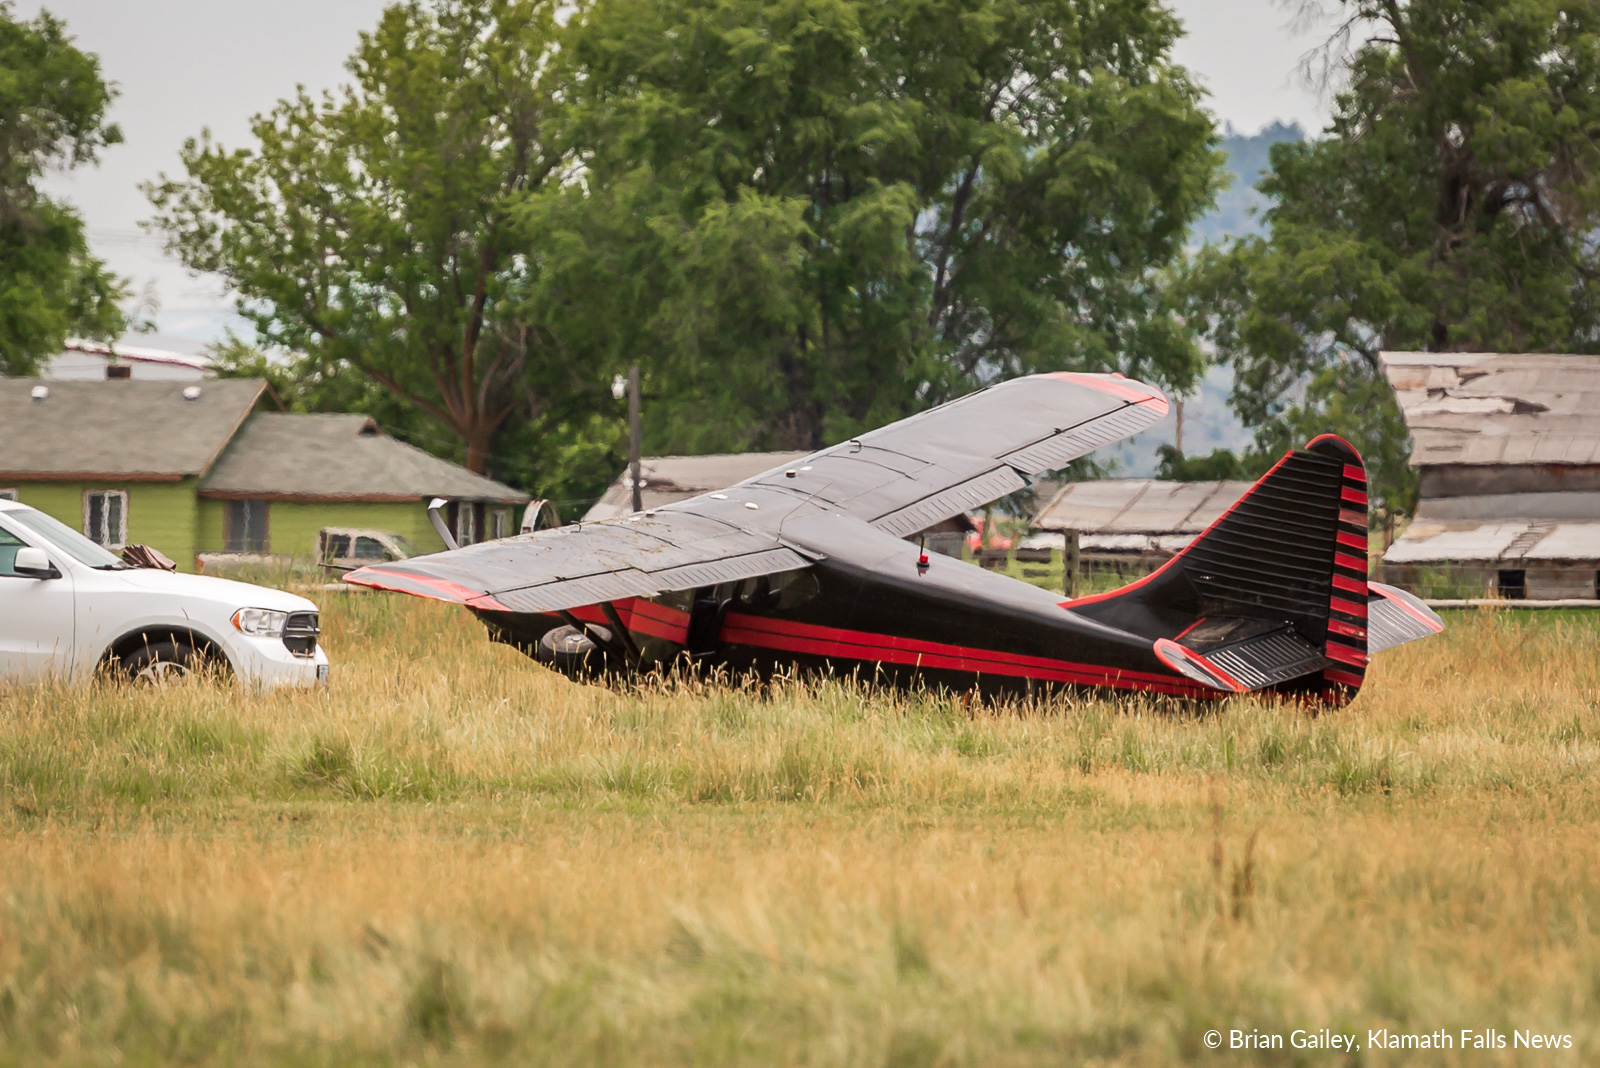 No injuries were reported after a single engine aircraft crashed in a field south of the Crater Lake - Klamath Regional Airport. July 9, 2019 (Image, Brian Gailey, Klamath Falls News)